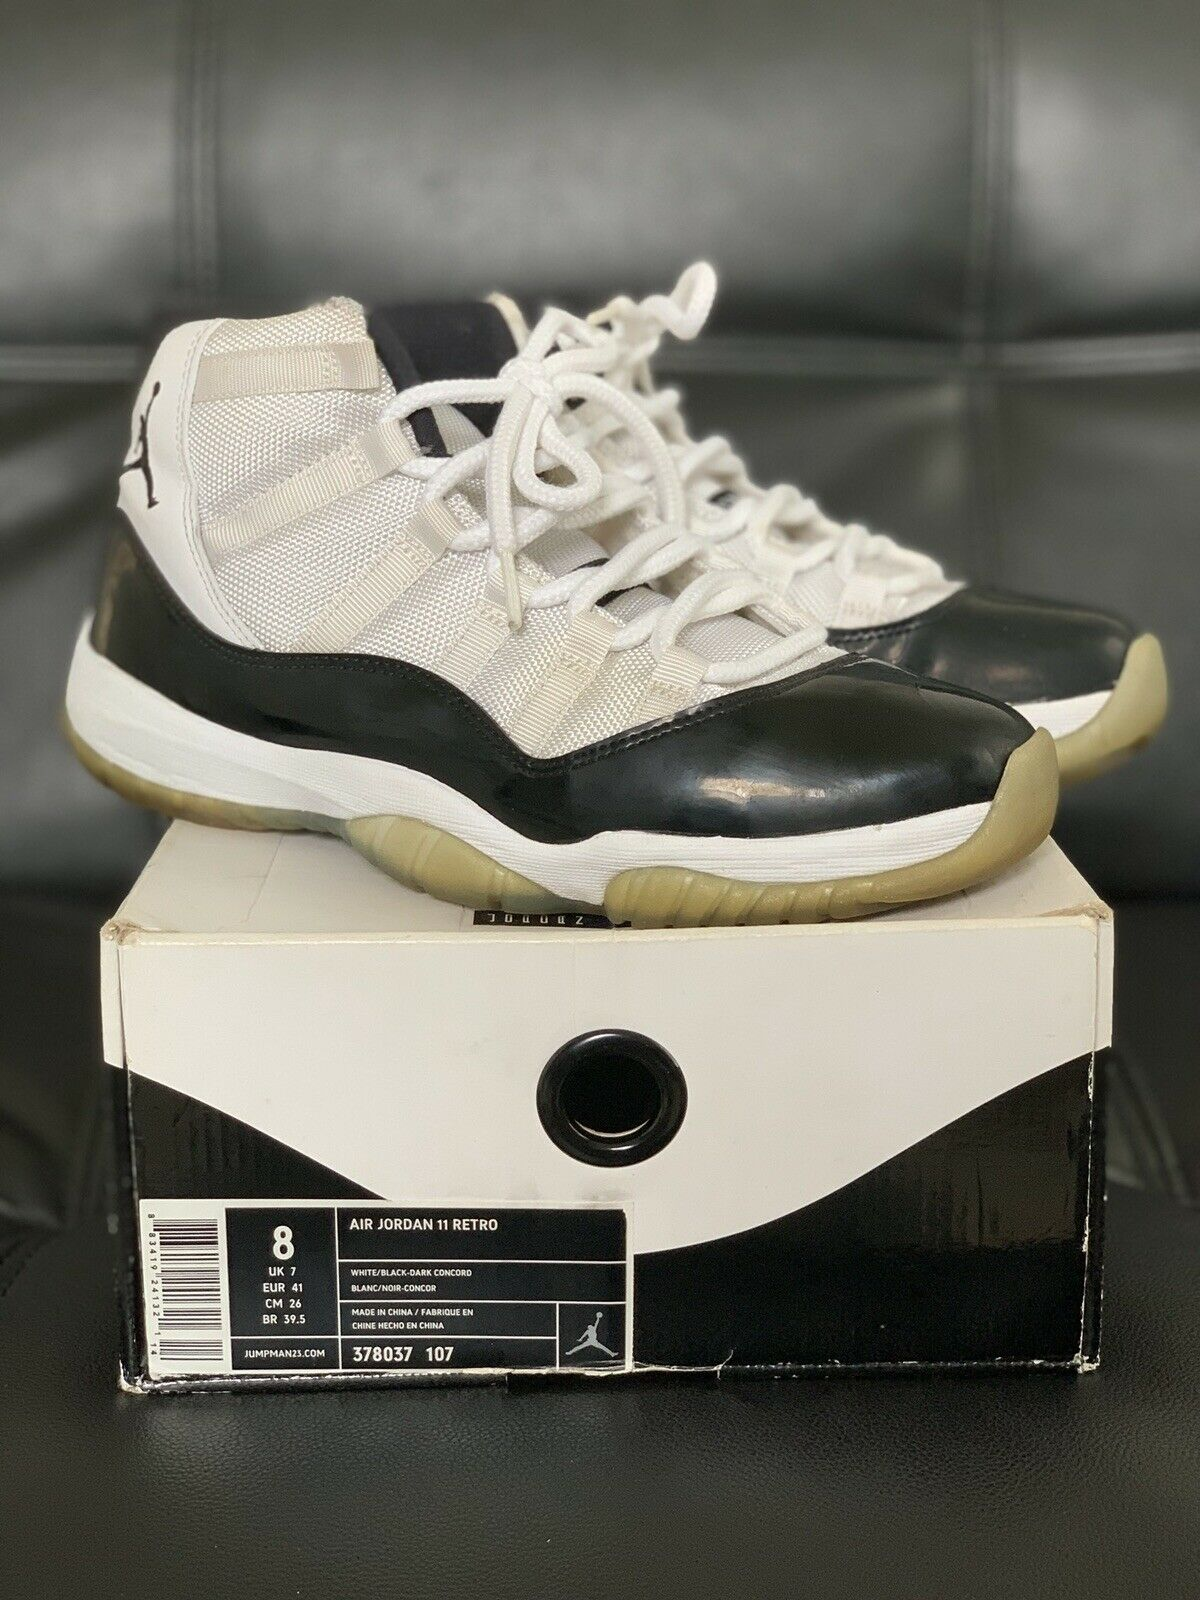 cheaper 651bf 6dd5e Air Jordan Retro 11 Concord 2011 Size 8